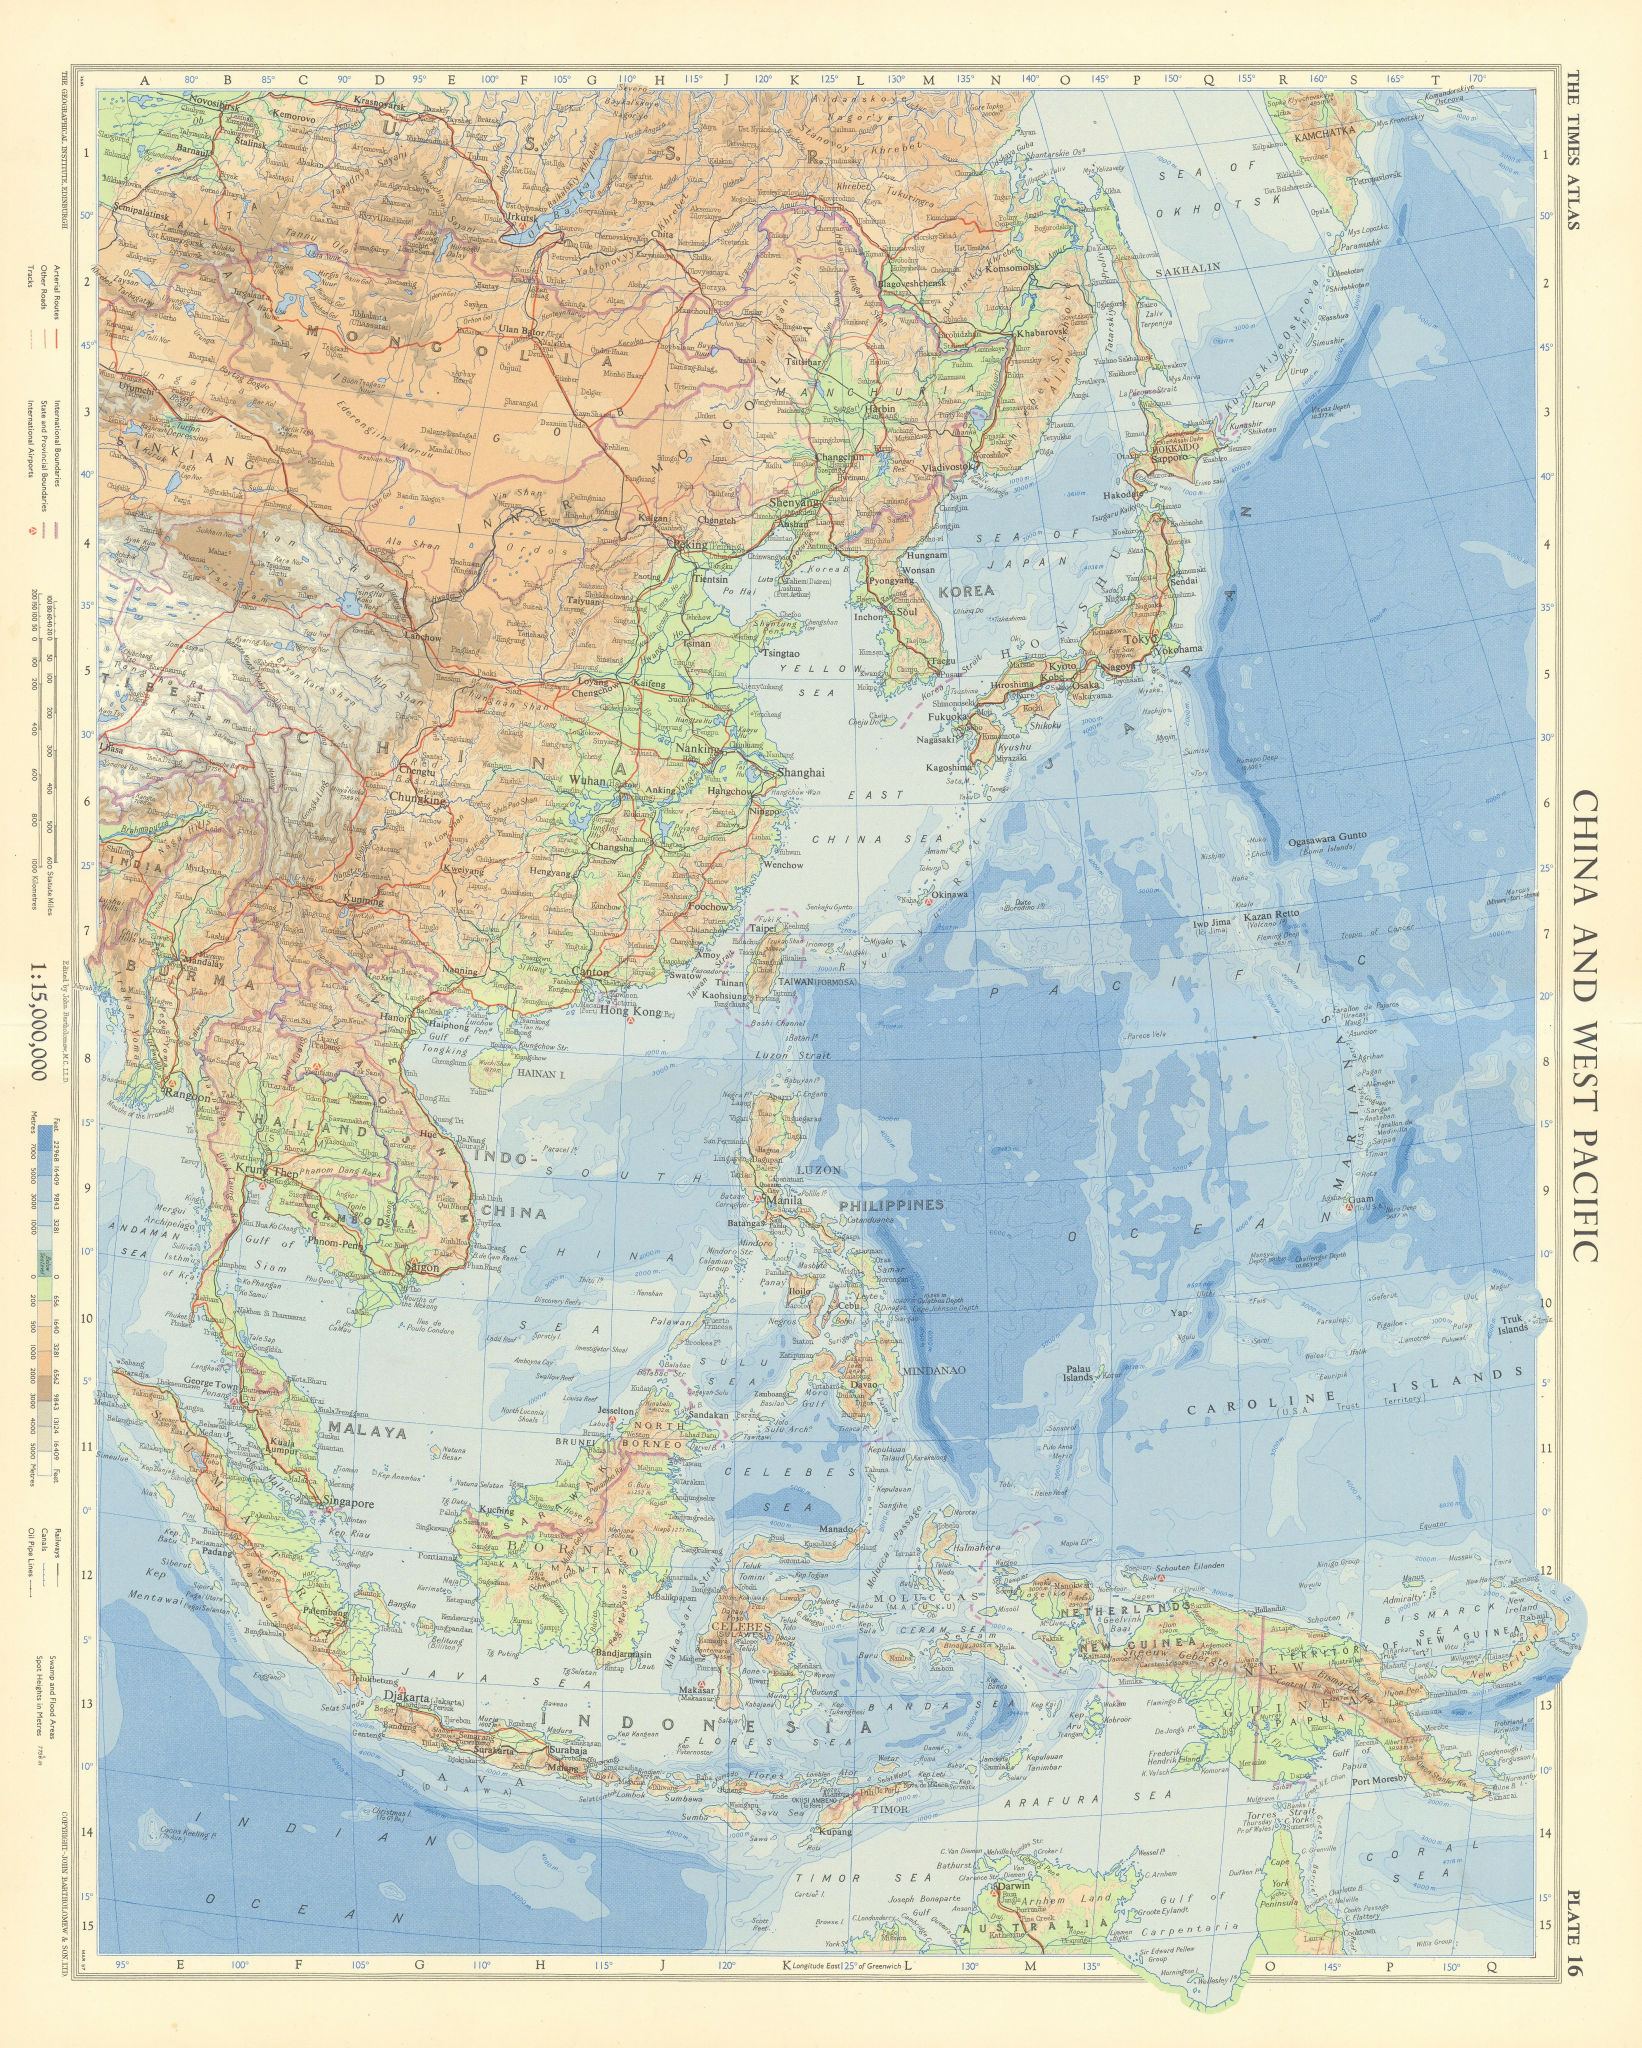 China and western Pacific. East Asia Indonesia Philippines. TIMES 1958 old map